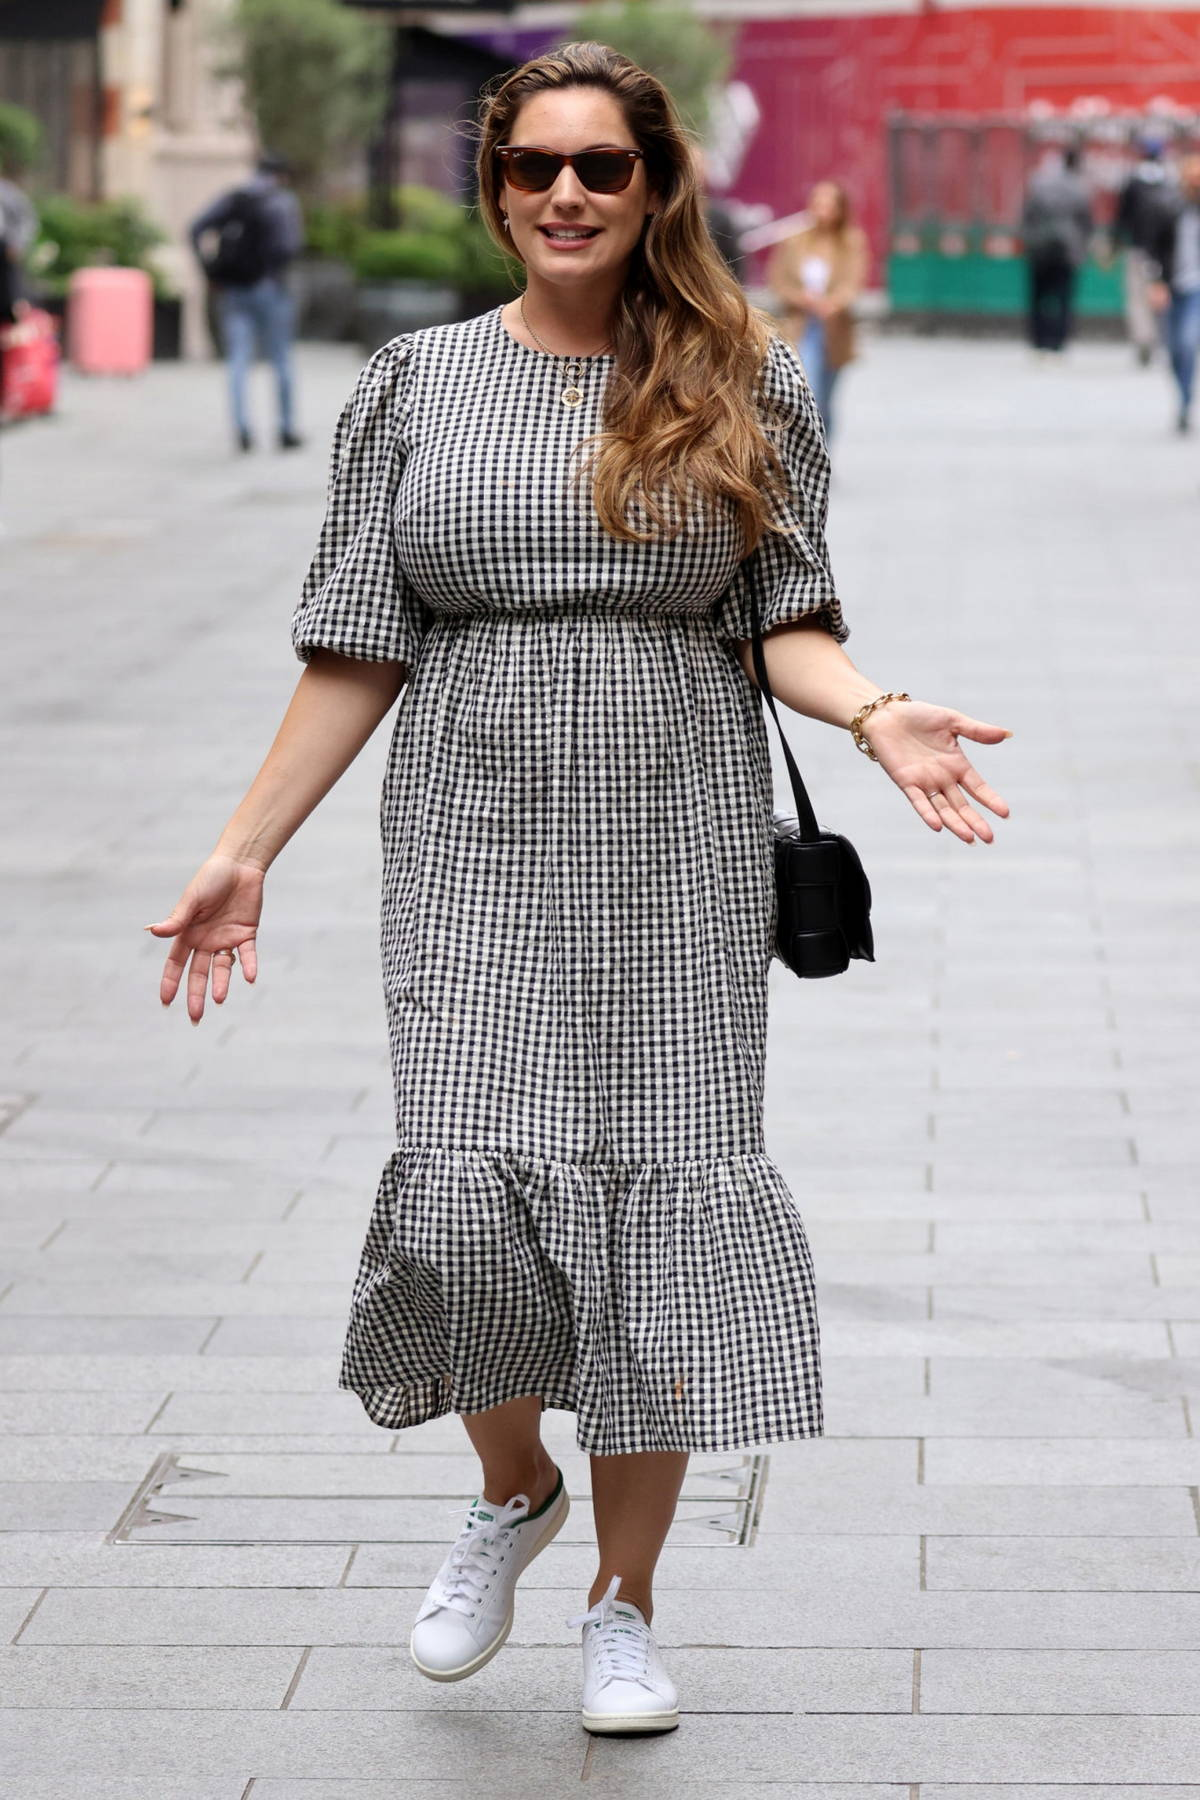 Kelly Brook looks pretty in gingham dress as she leaves Heart Radio and goes shopping with boyfriend Jeremy Parisi in London, UK